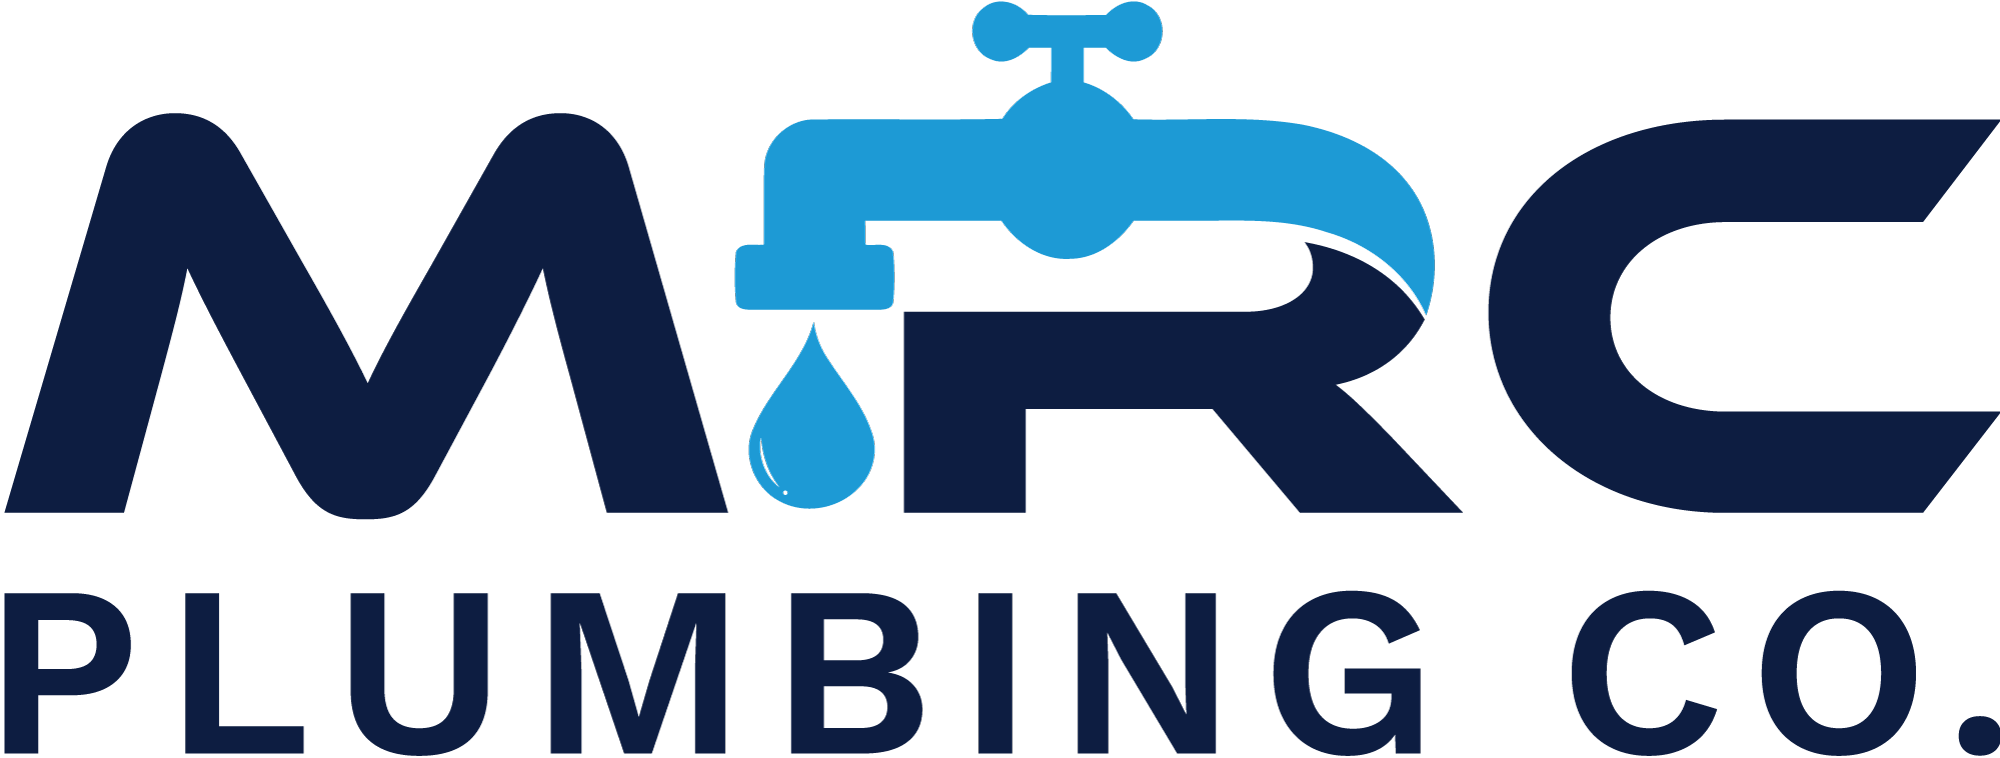 MRC Plumbing Offers Excellent Plumbing Services In Bonne Terre